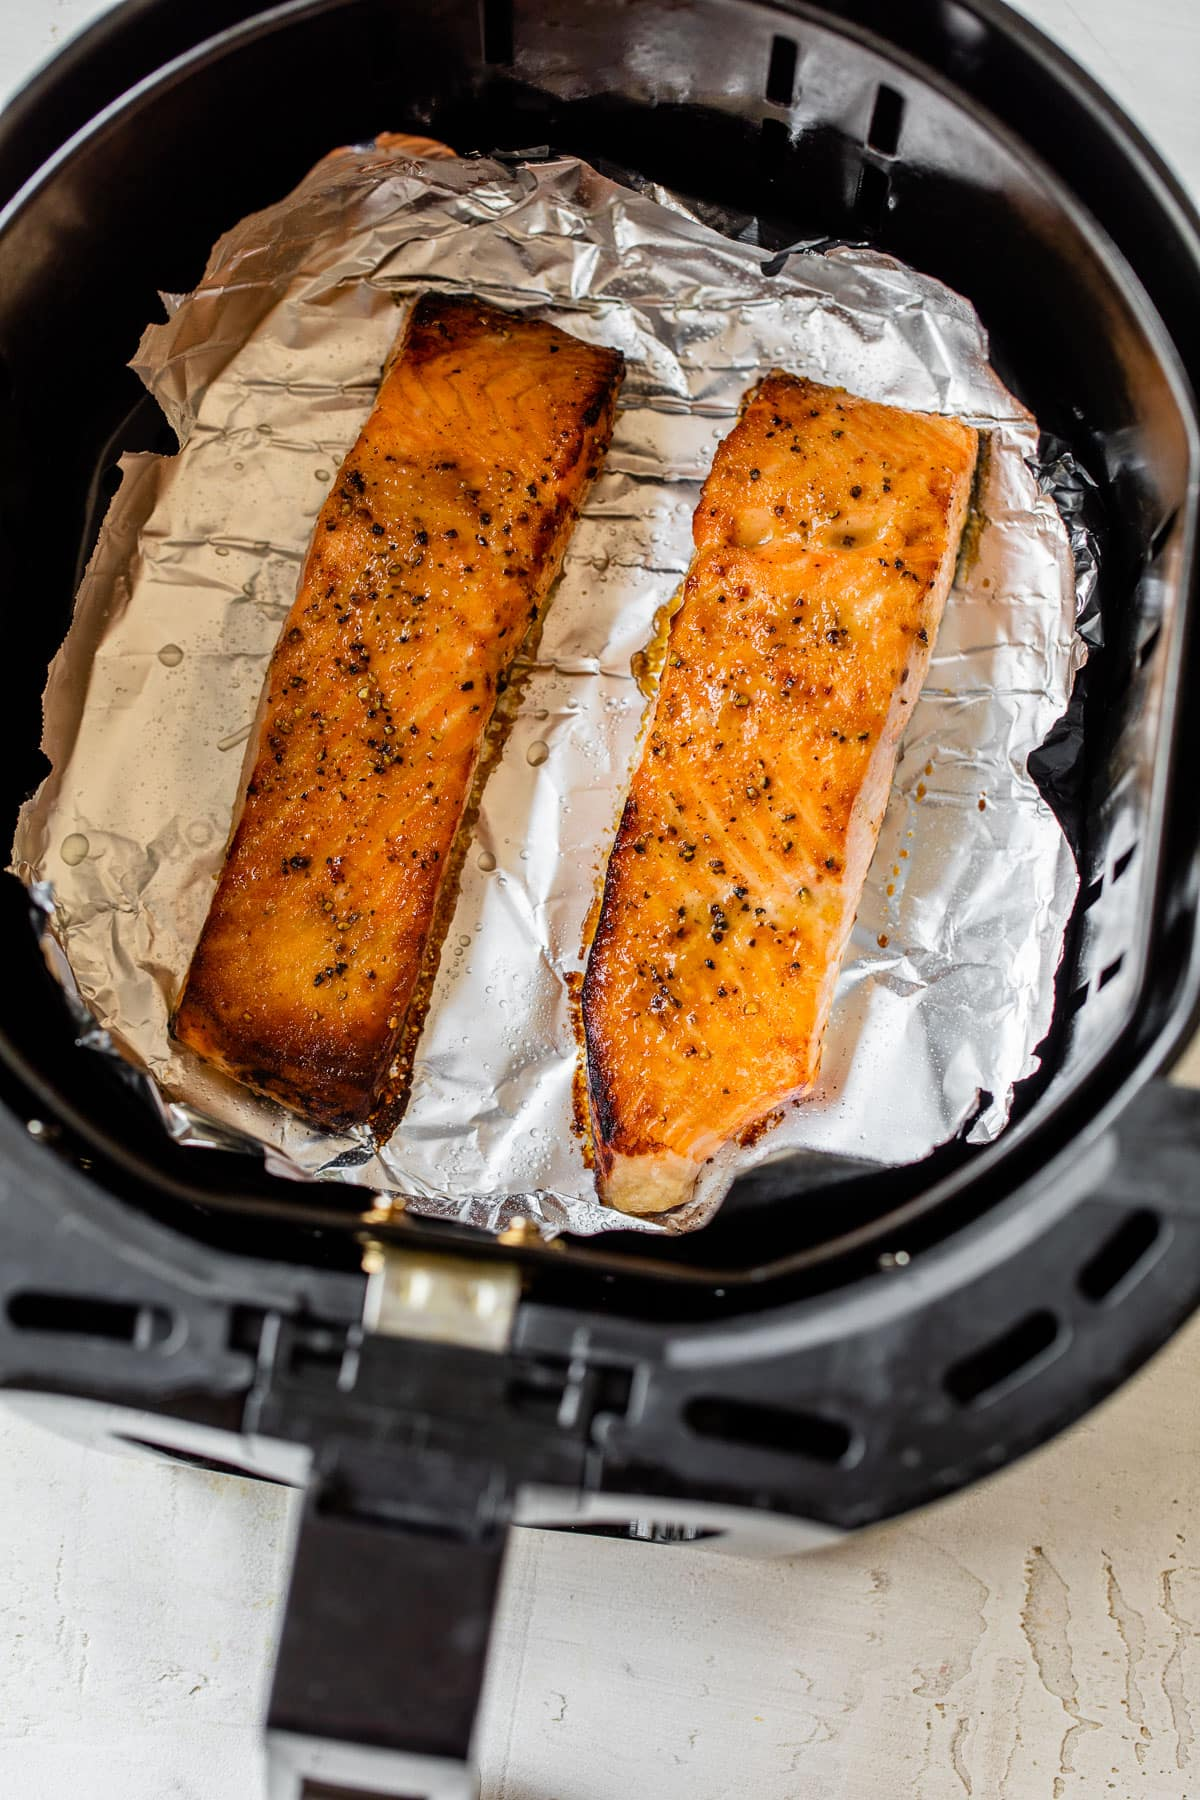 Two salmon fillets in an air fryer